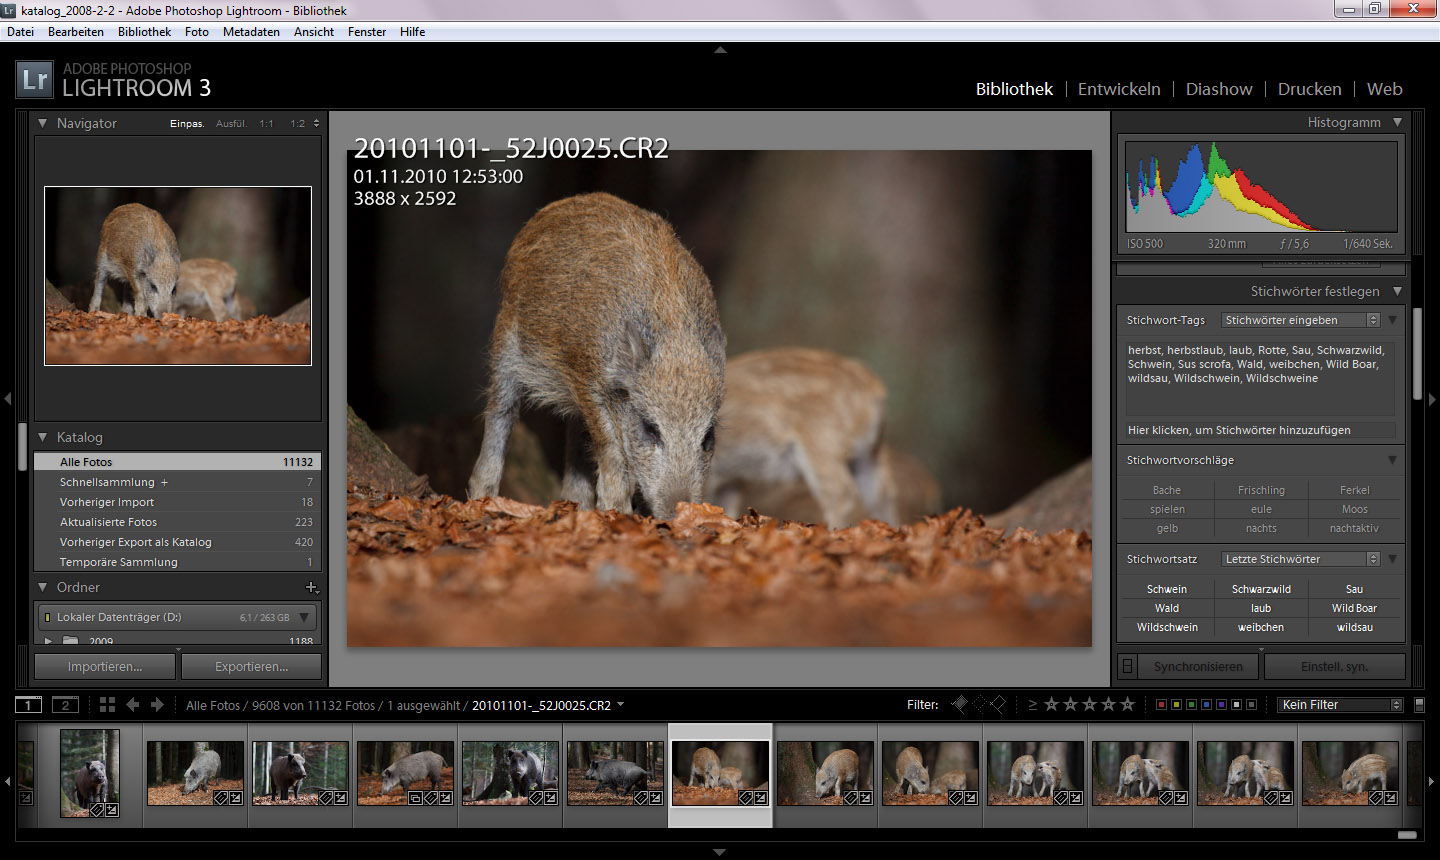 Wild boar in the Lightroom library